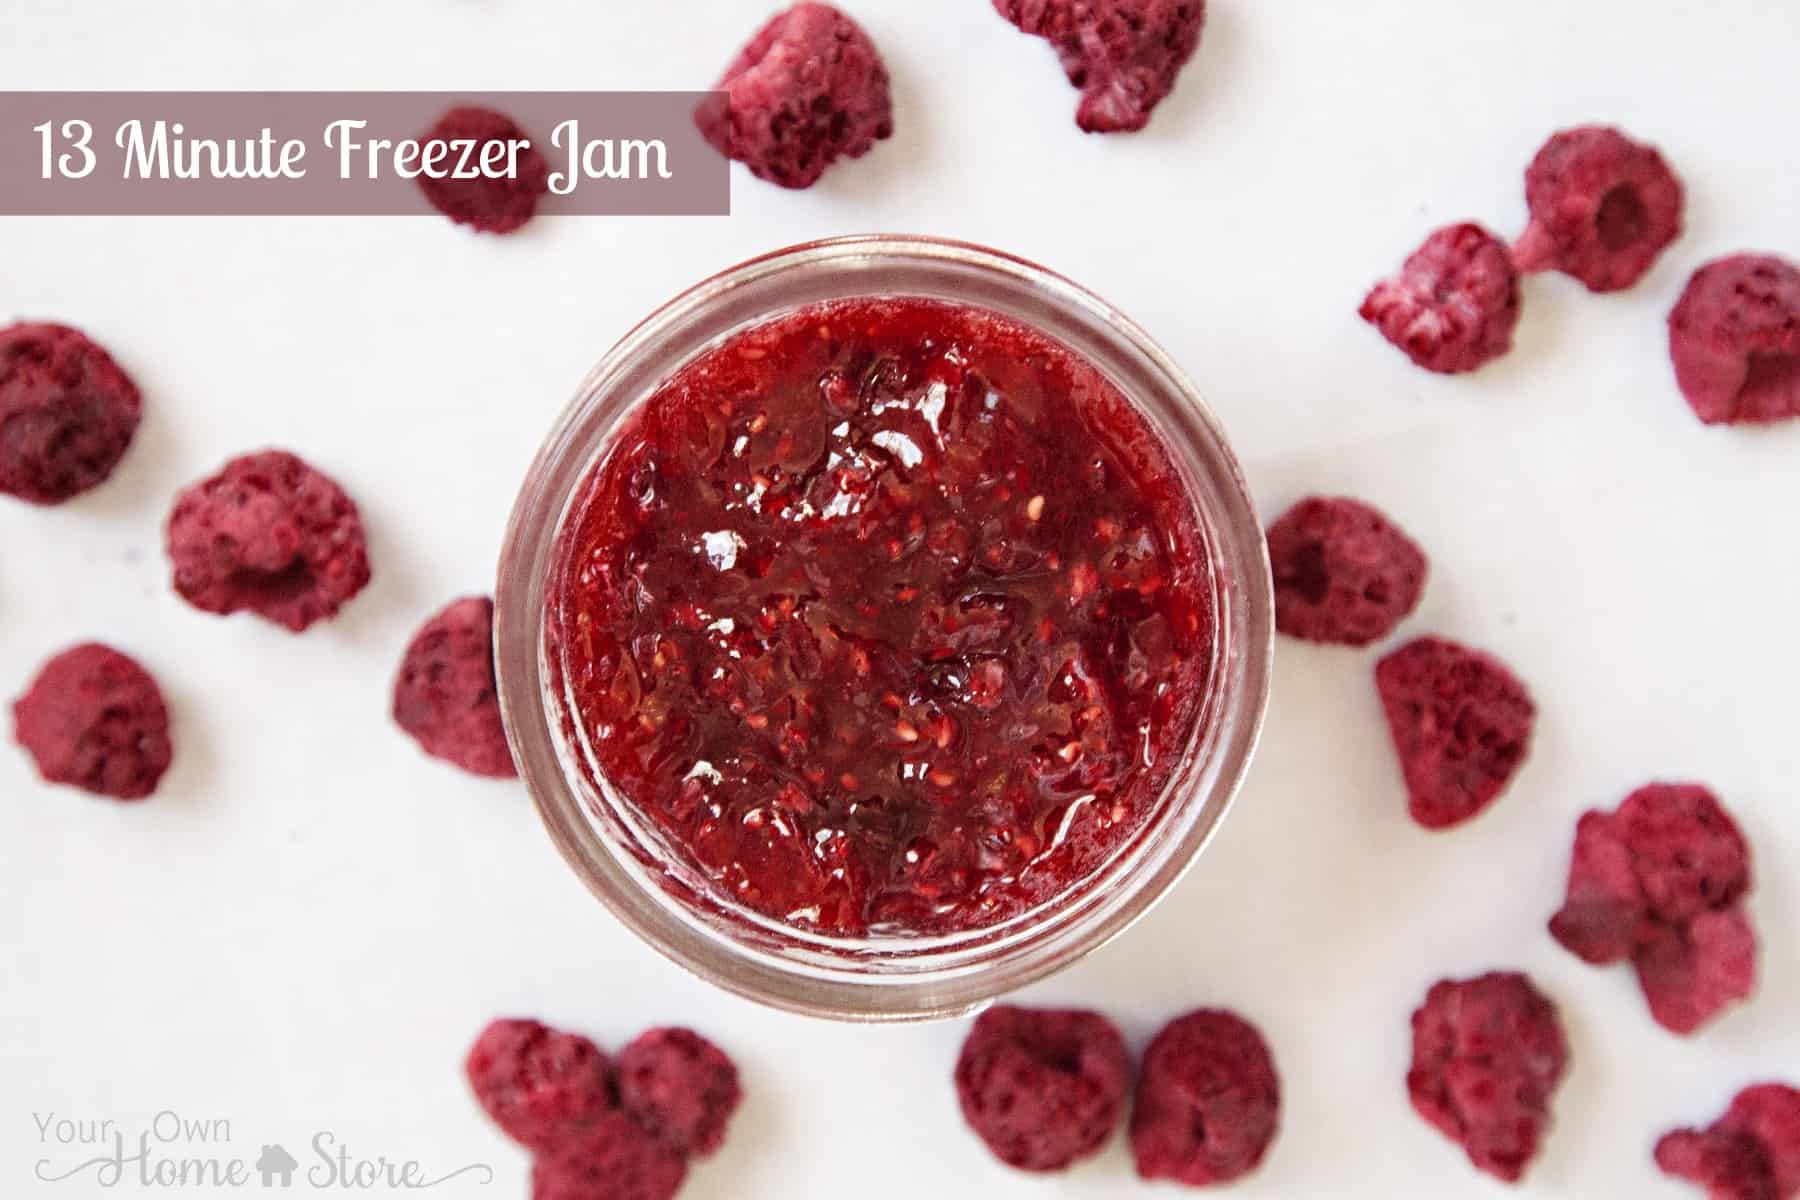 13 Minute Freezer Jam and Printable Labels